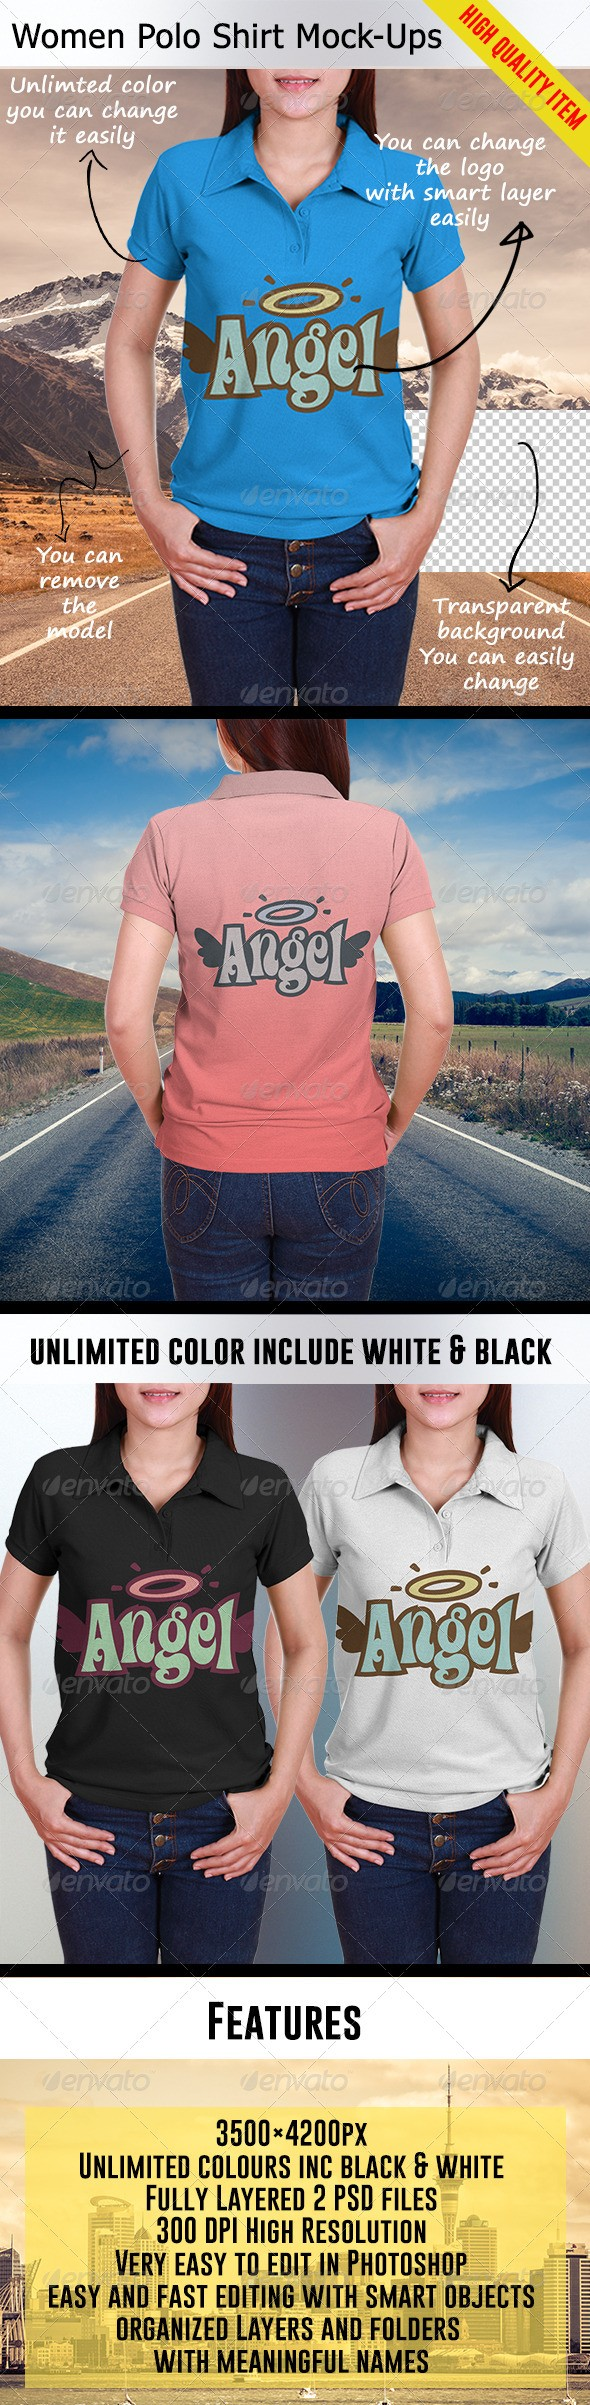 Women Polo Shirt Mockups